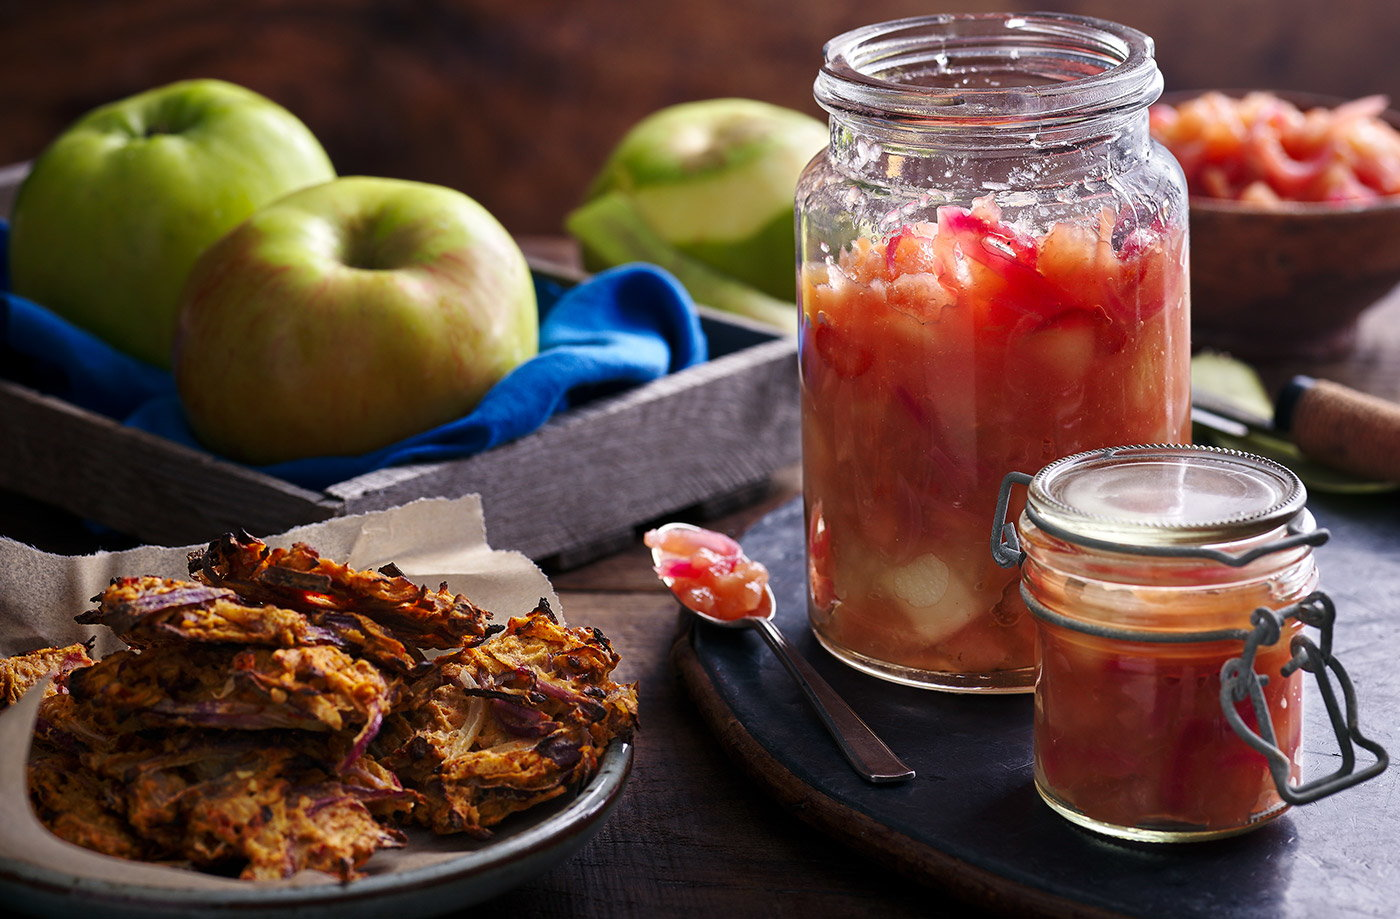 Baked apple pakoras with spiced apple chutney recipe